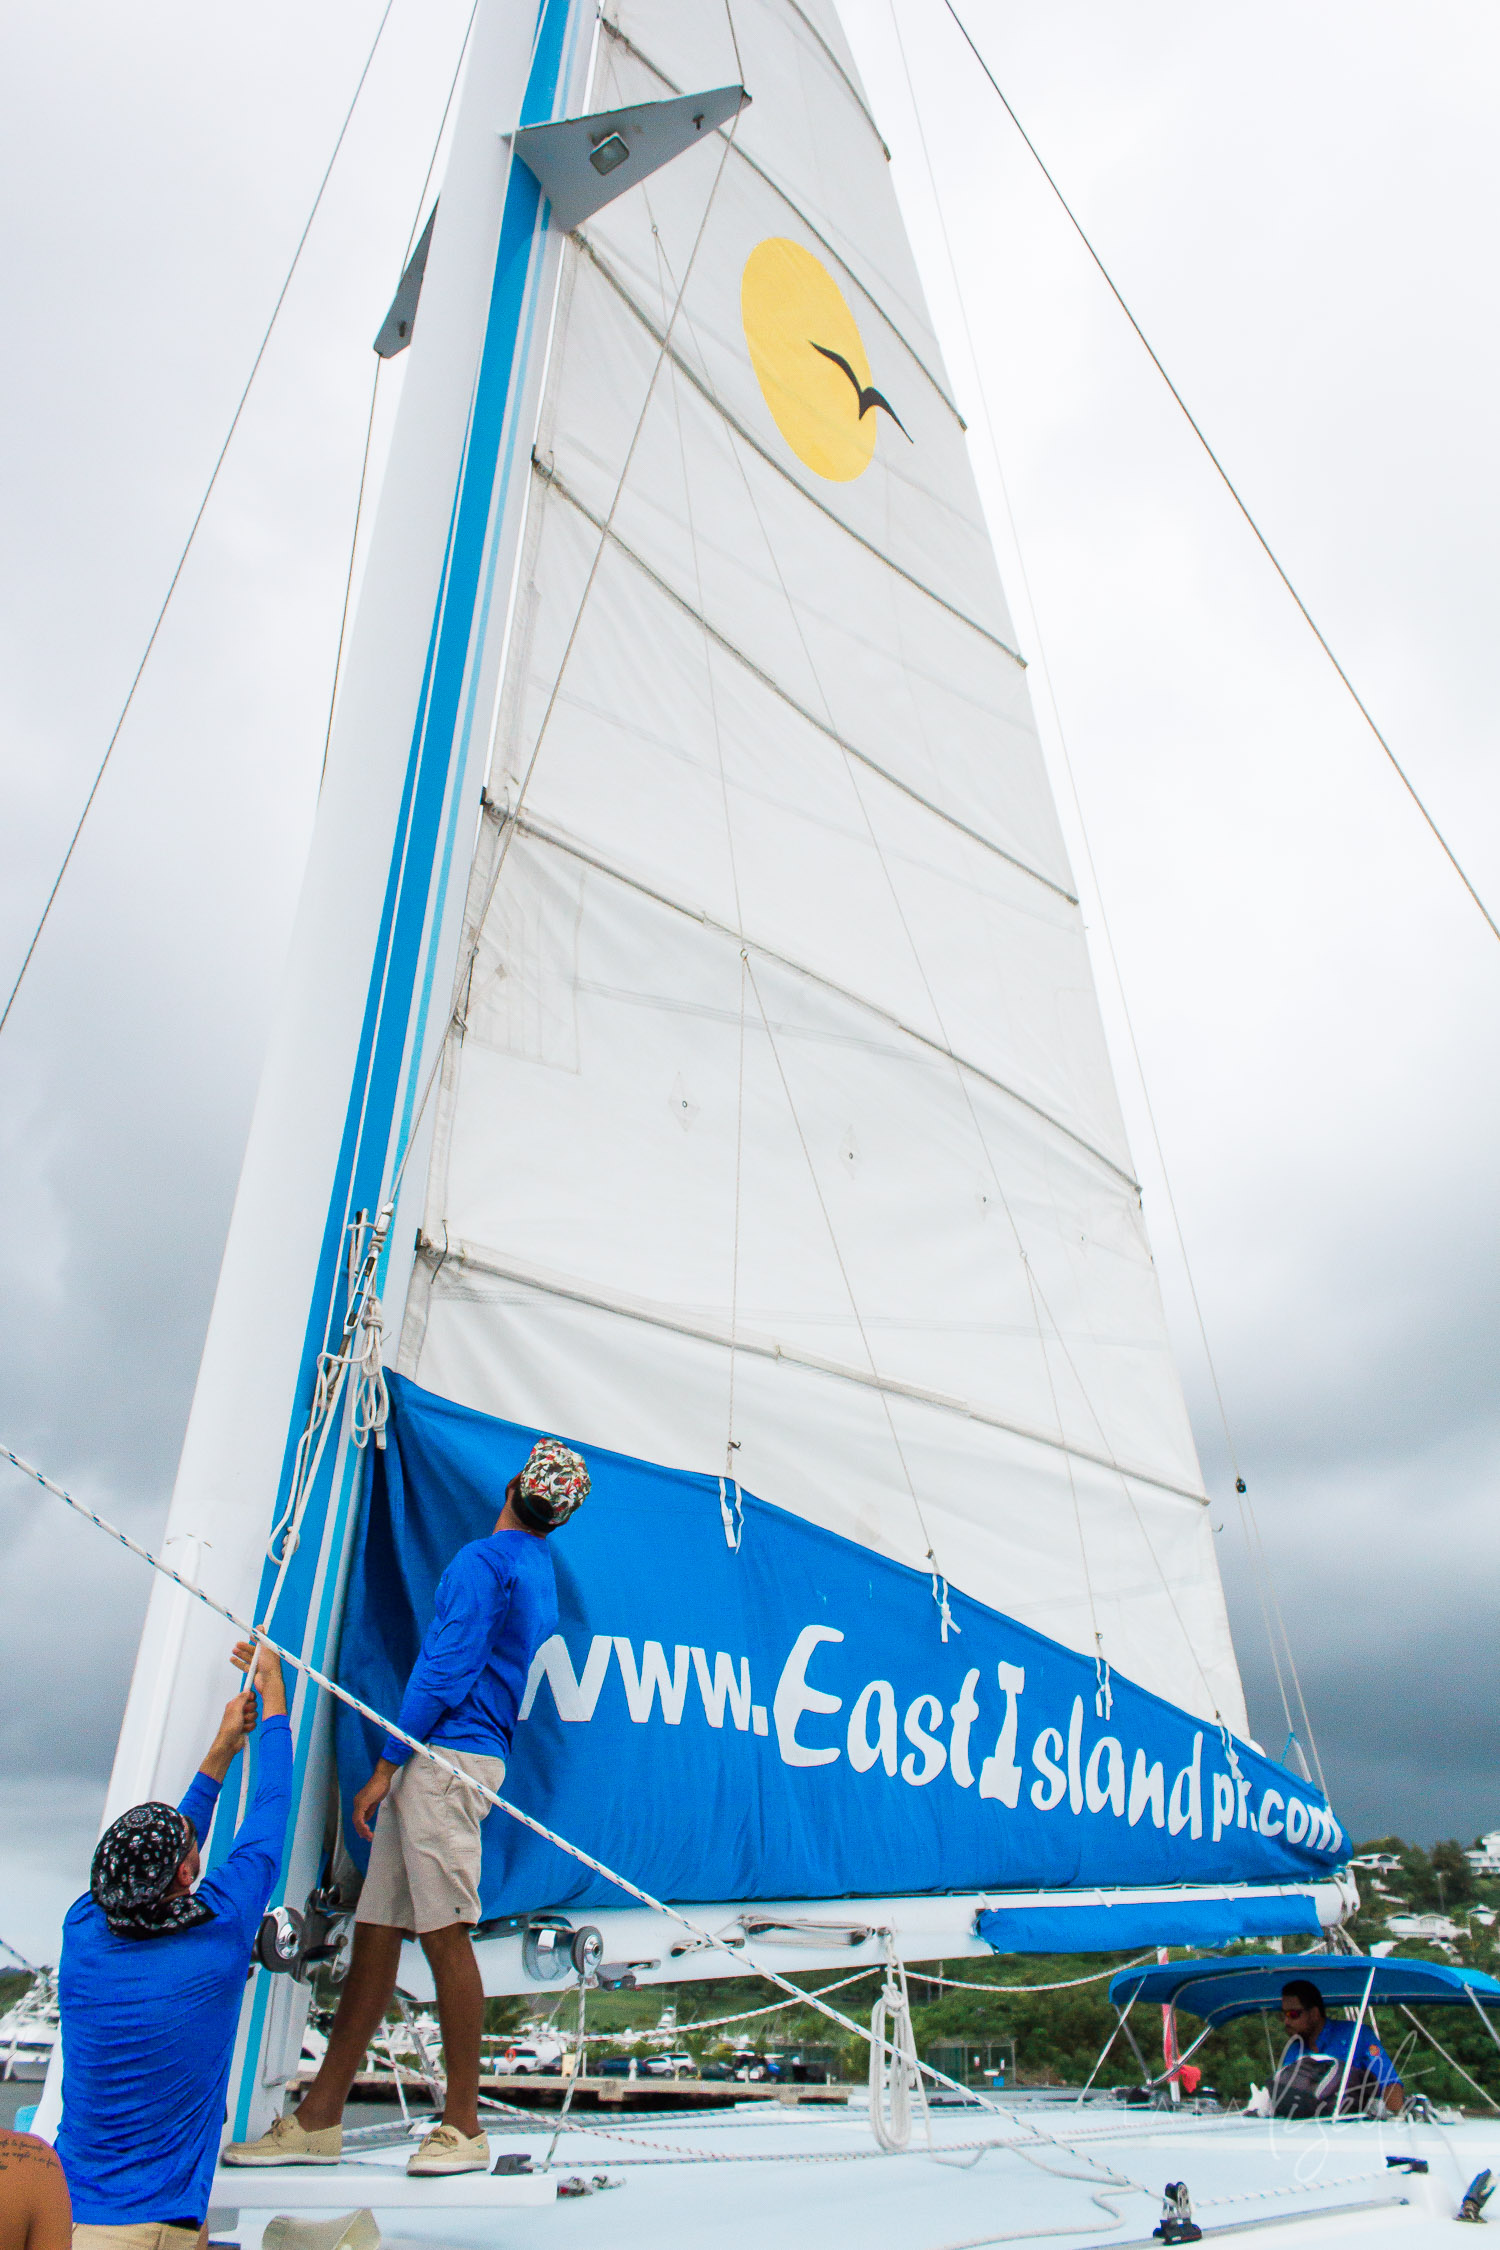 sailors-hoisting-sail-catamaran